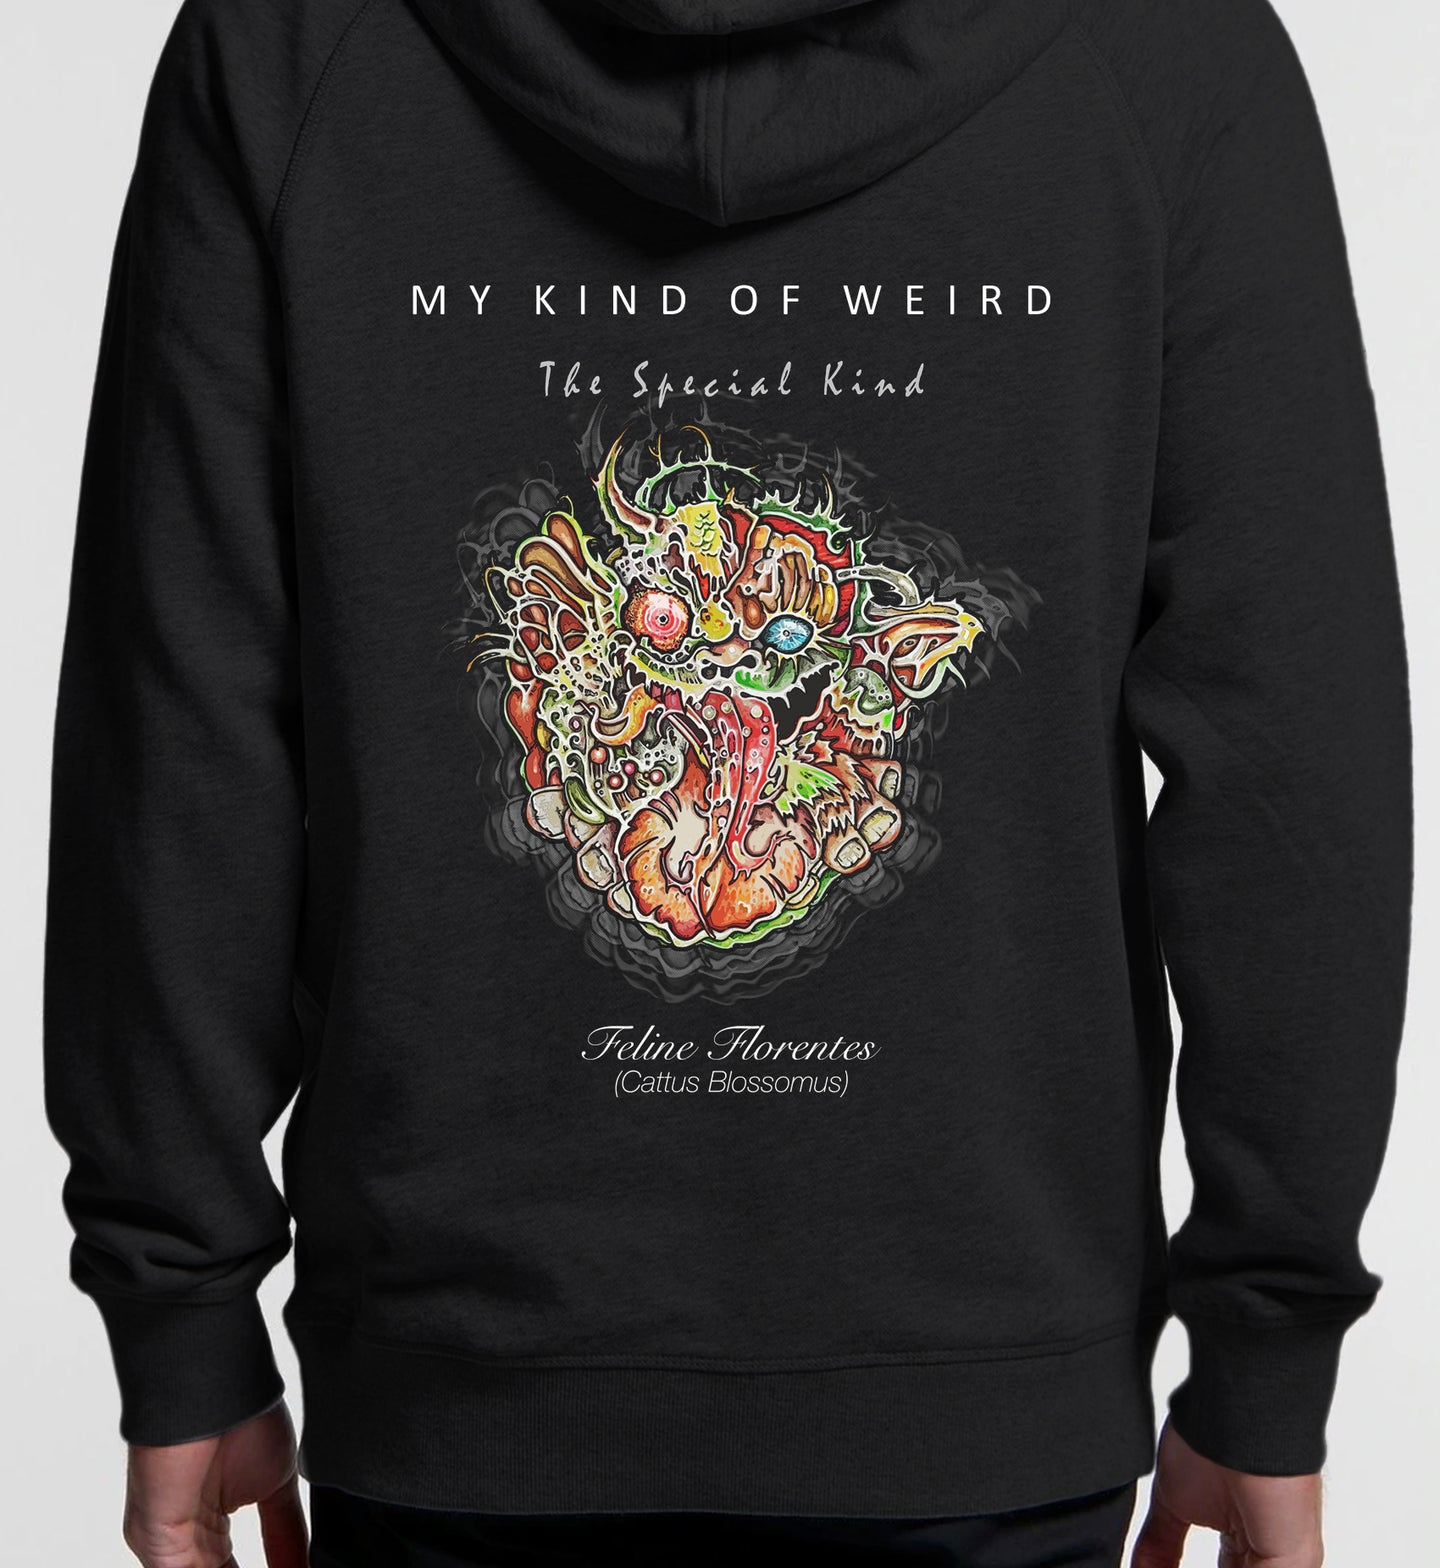 MY KIND OF WEIRD - FELINEFLORA - PREMIUM HOODIE 5120/4210